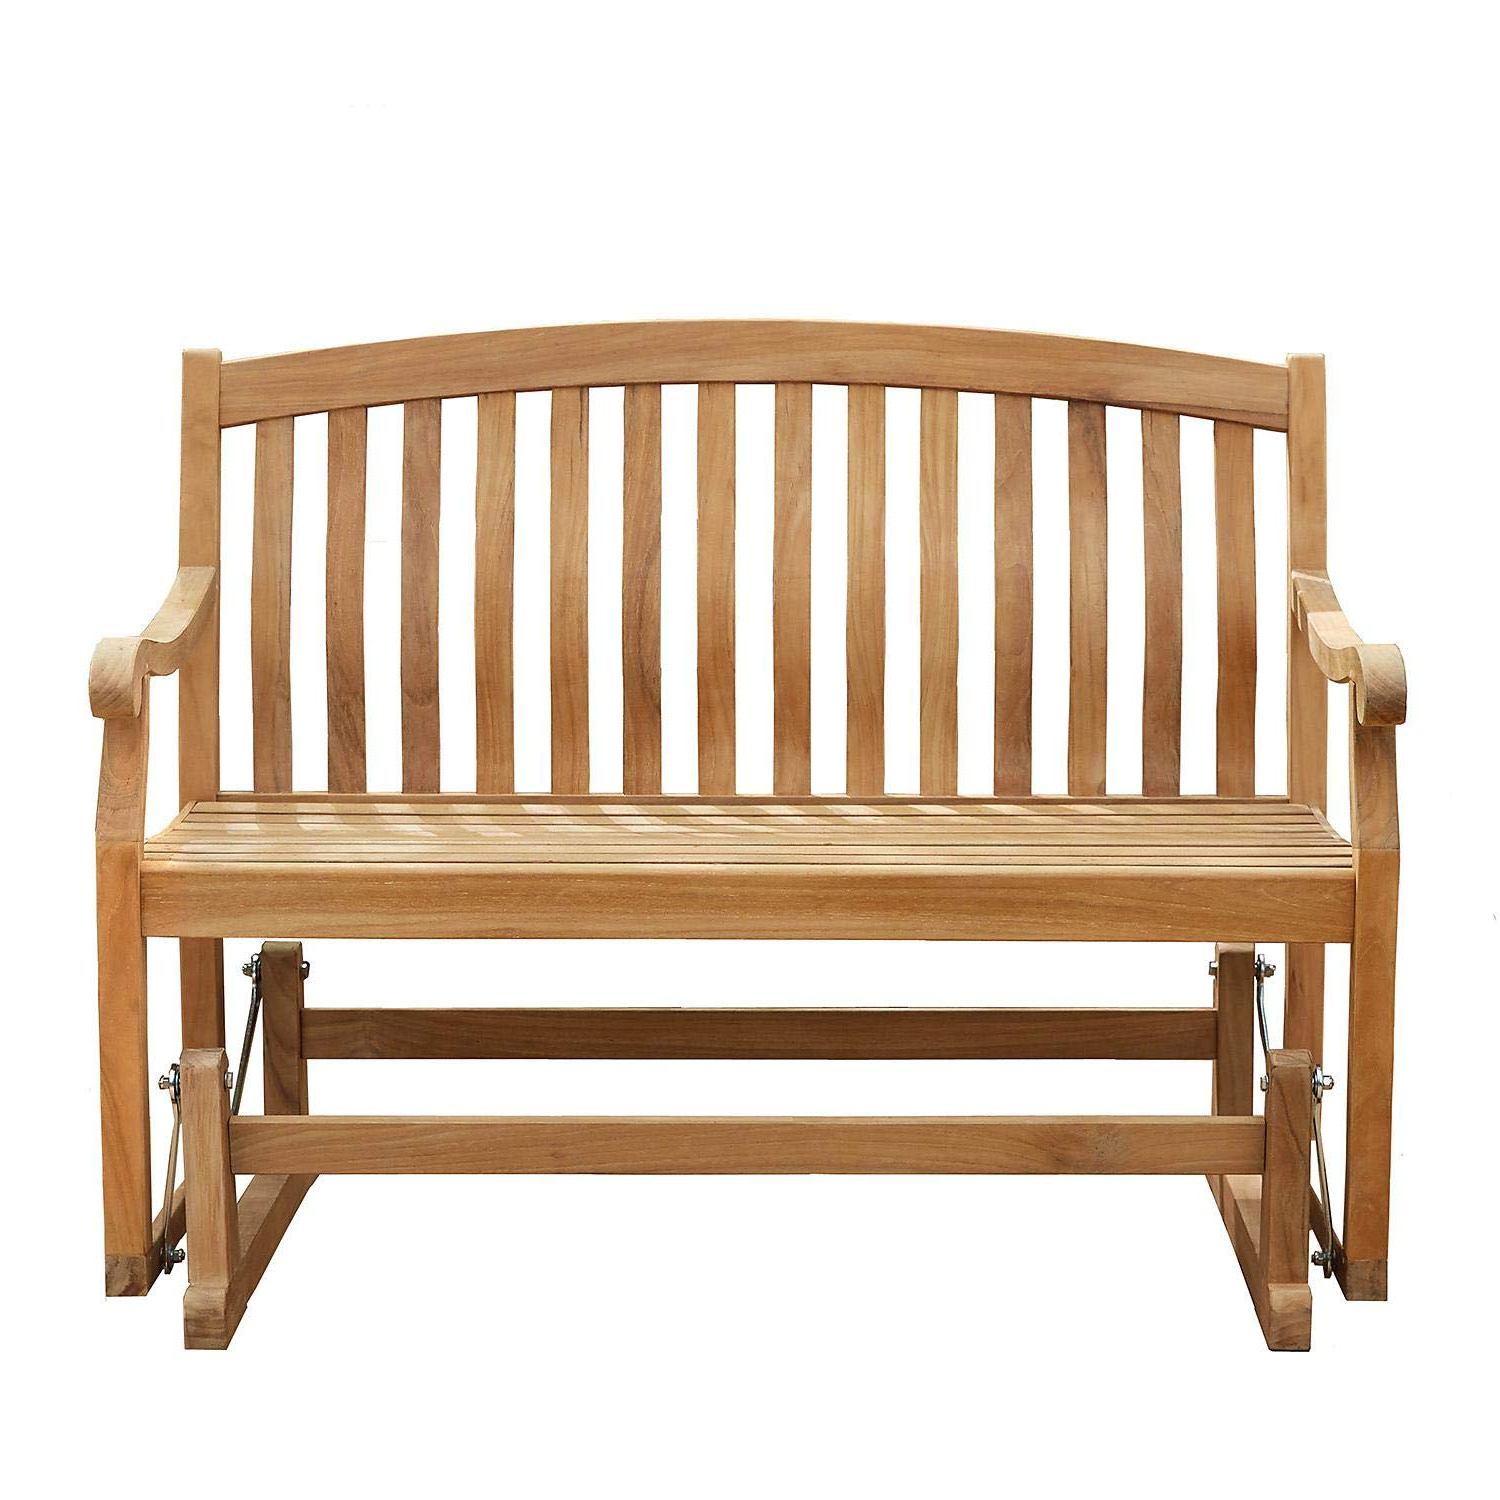 Teak Outdoor Glider Benches For Preferred Amazon : Member's Mark 4' Grade A Teak Glider Bench (View 7 of 30)